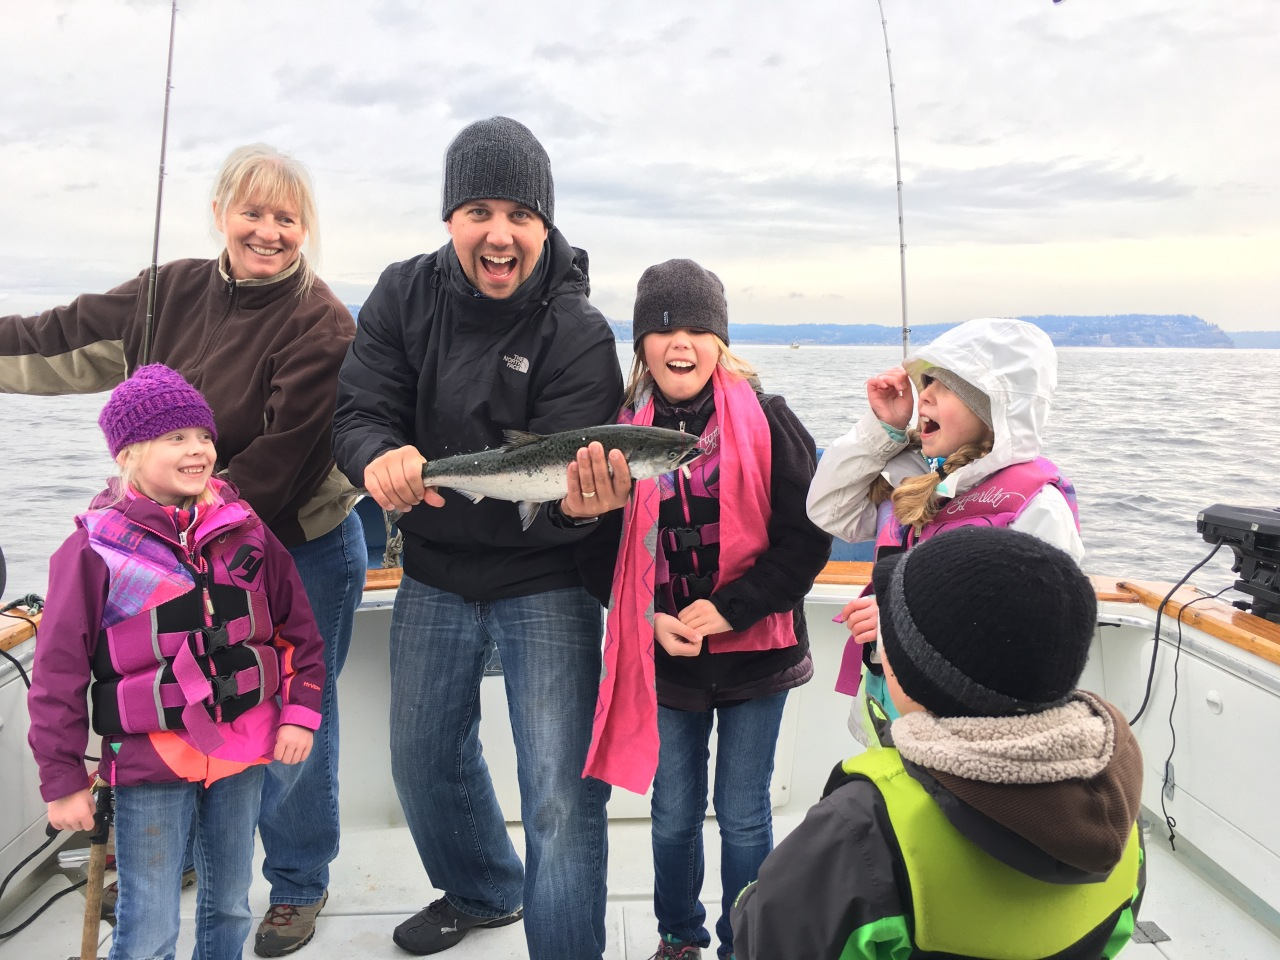 Chapter 22: Cruising, Fishing, Friends and Blessings living at thePort